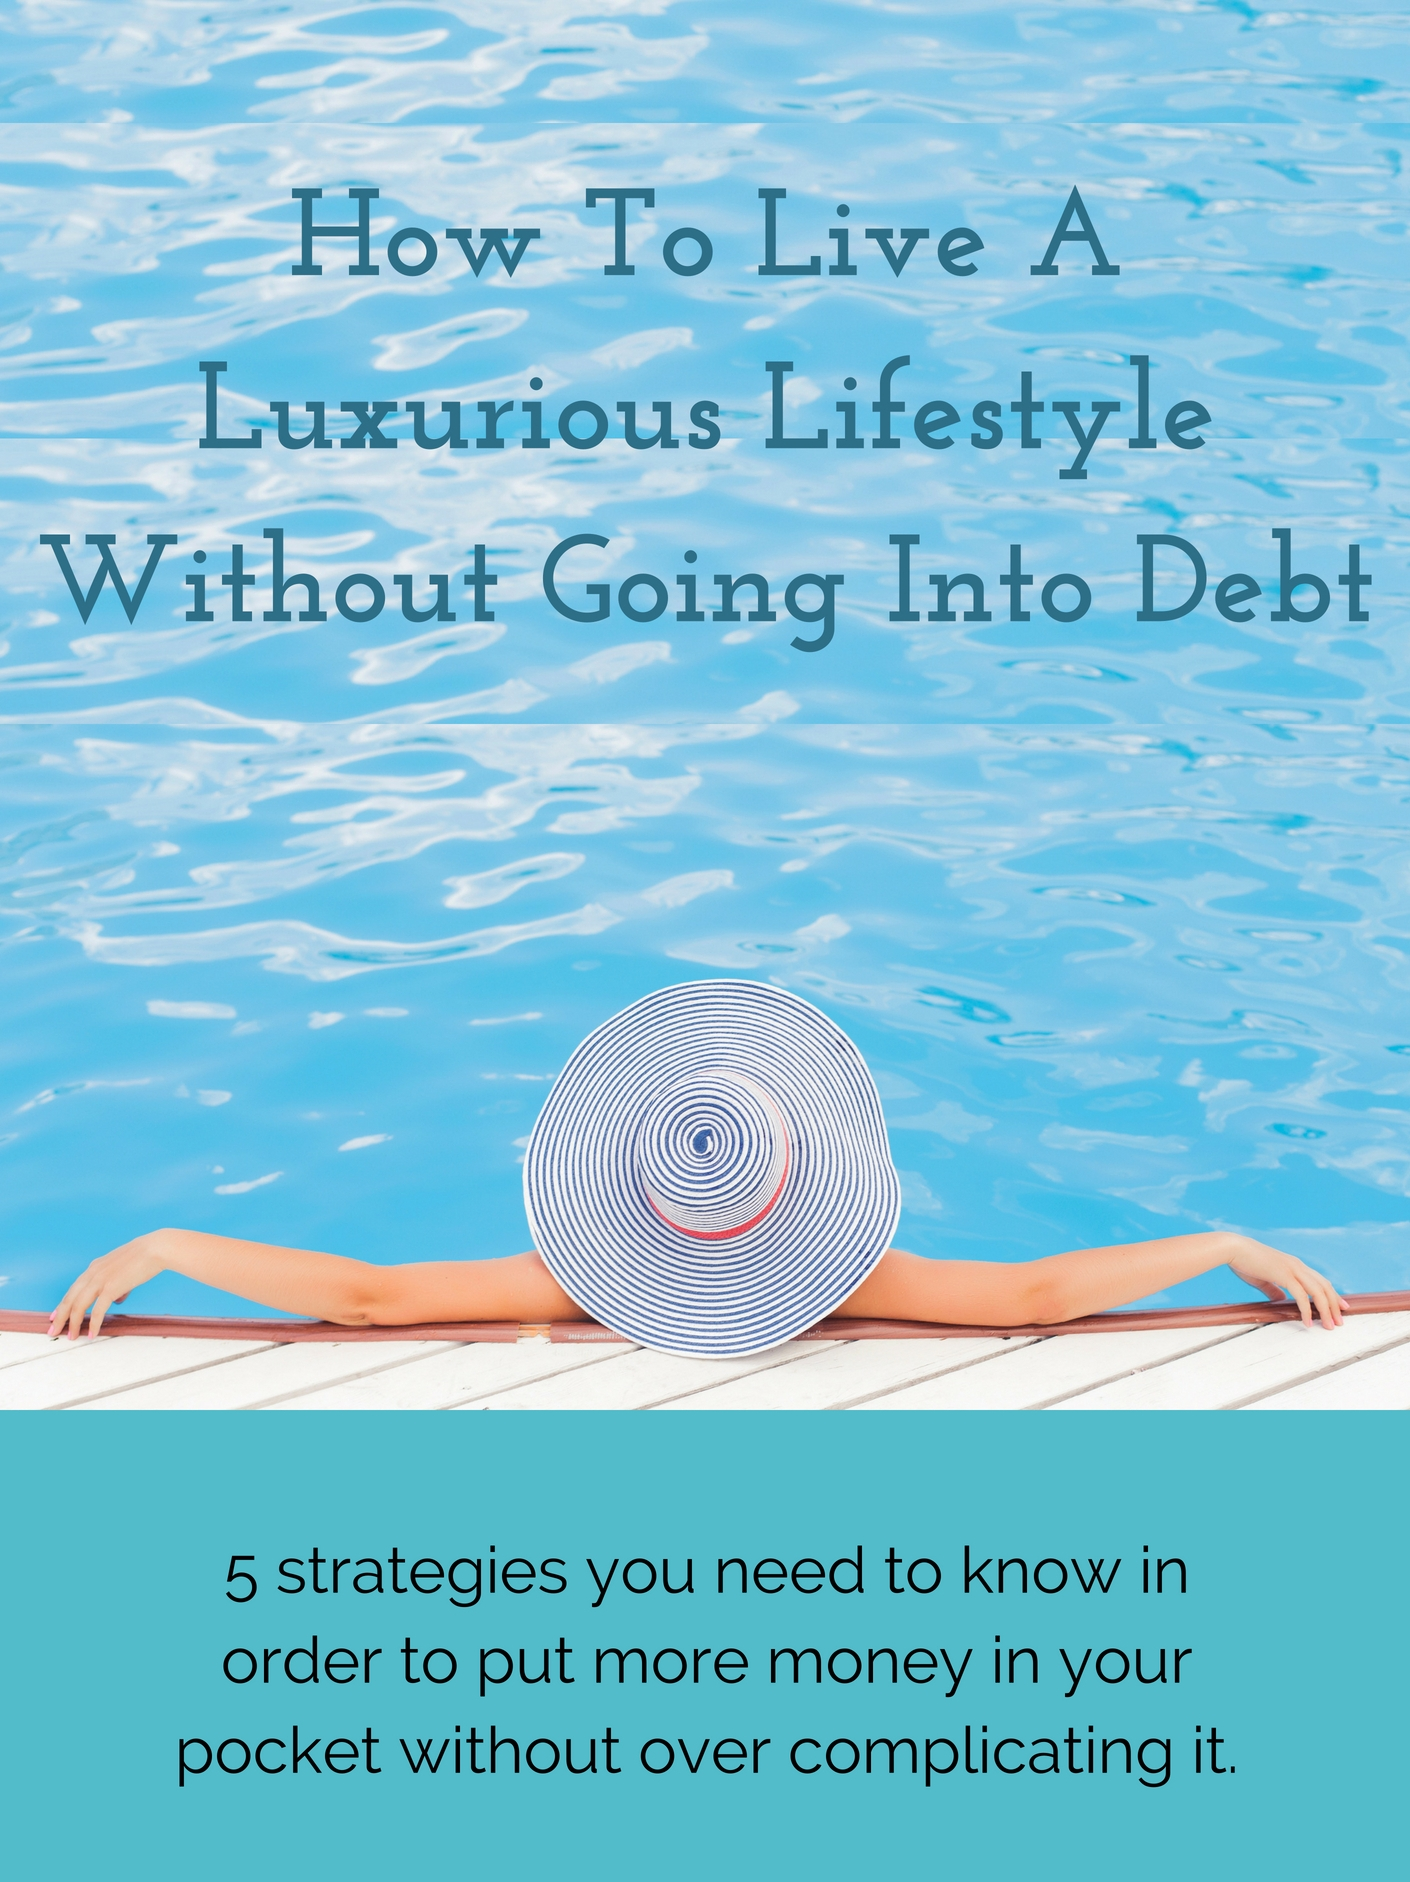 How To Live A Luxurious Lifestyle Without Going Into Debt E-Course - Enter HereThis course is a companion to my book. Together, we will go step-by-step through the 5 strategies with videos and worksheets to guide you along the way.You Get:10 Videos4 WorksheetsThe book, of courseand tons of bonus content